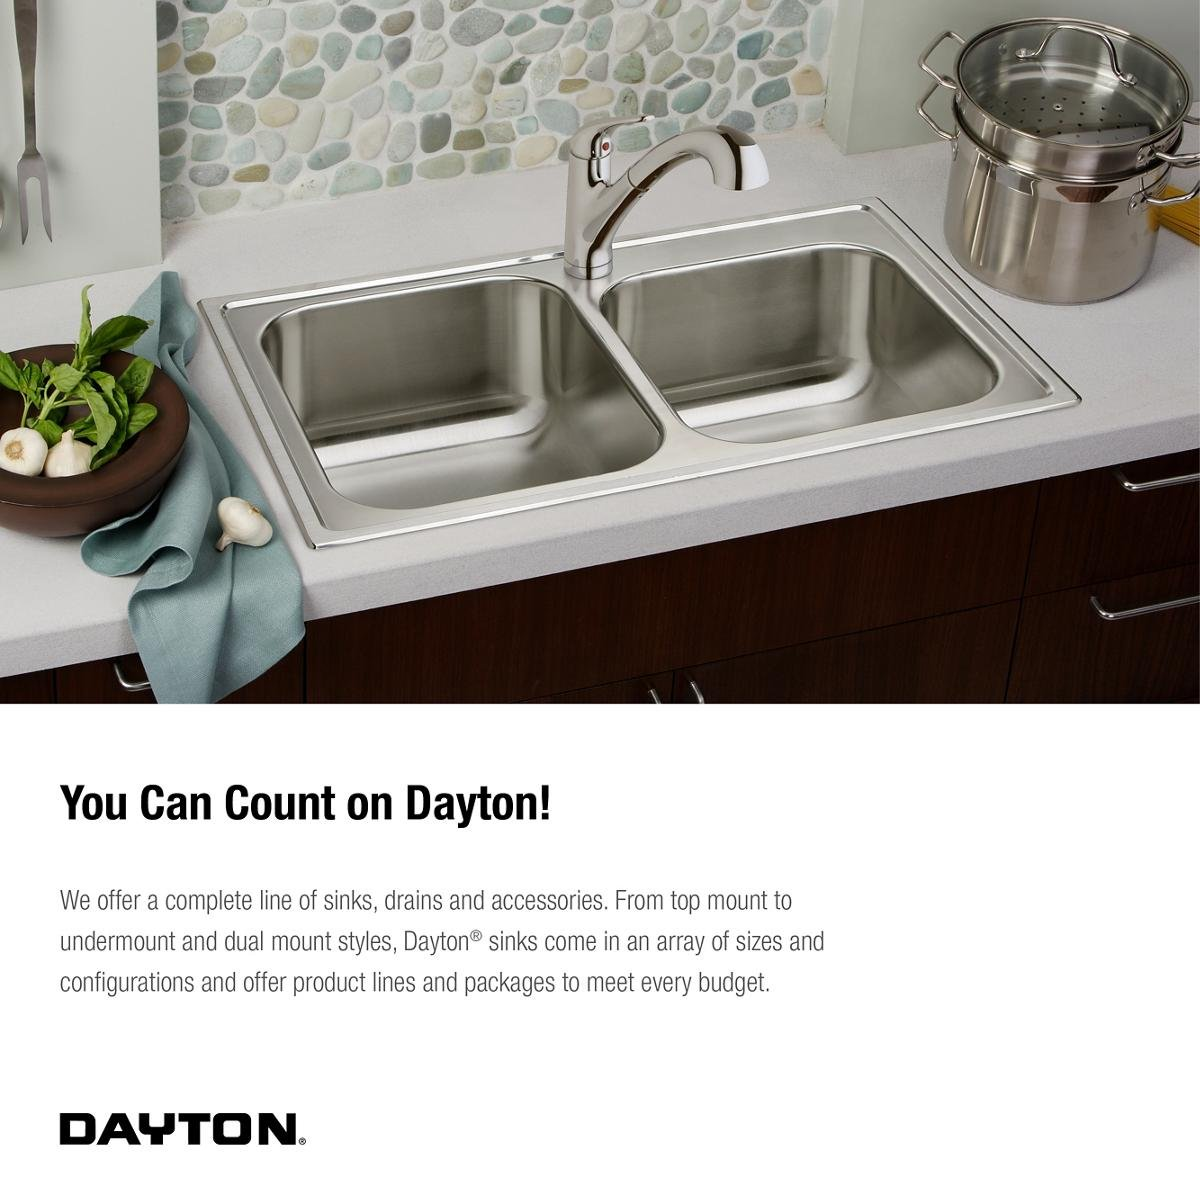 Kitchen Sink Drain Configurations Dayton d233193 equal double bowl top mount stainless steel sink dayton d233193 equal double bowl top mount stainless steel sink amazon workwithnaturefo